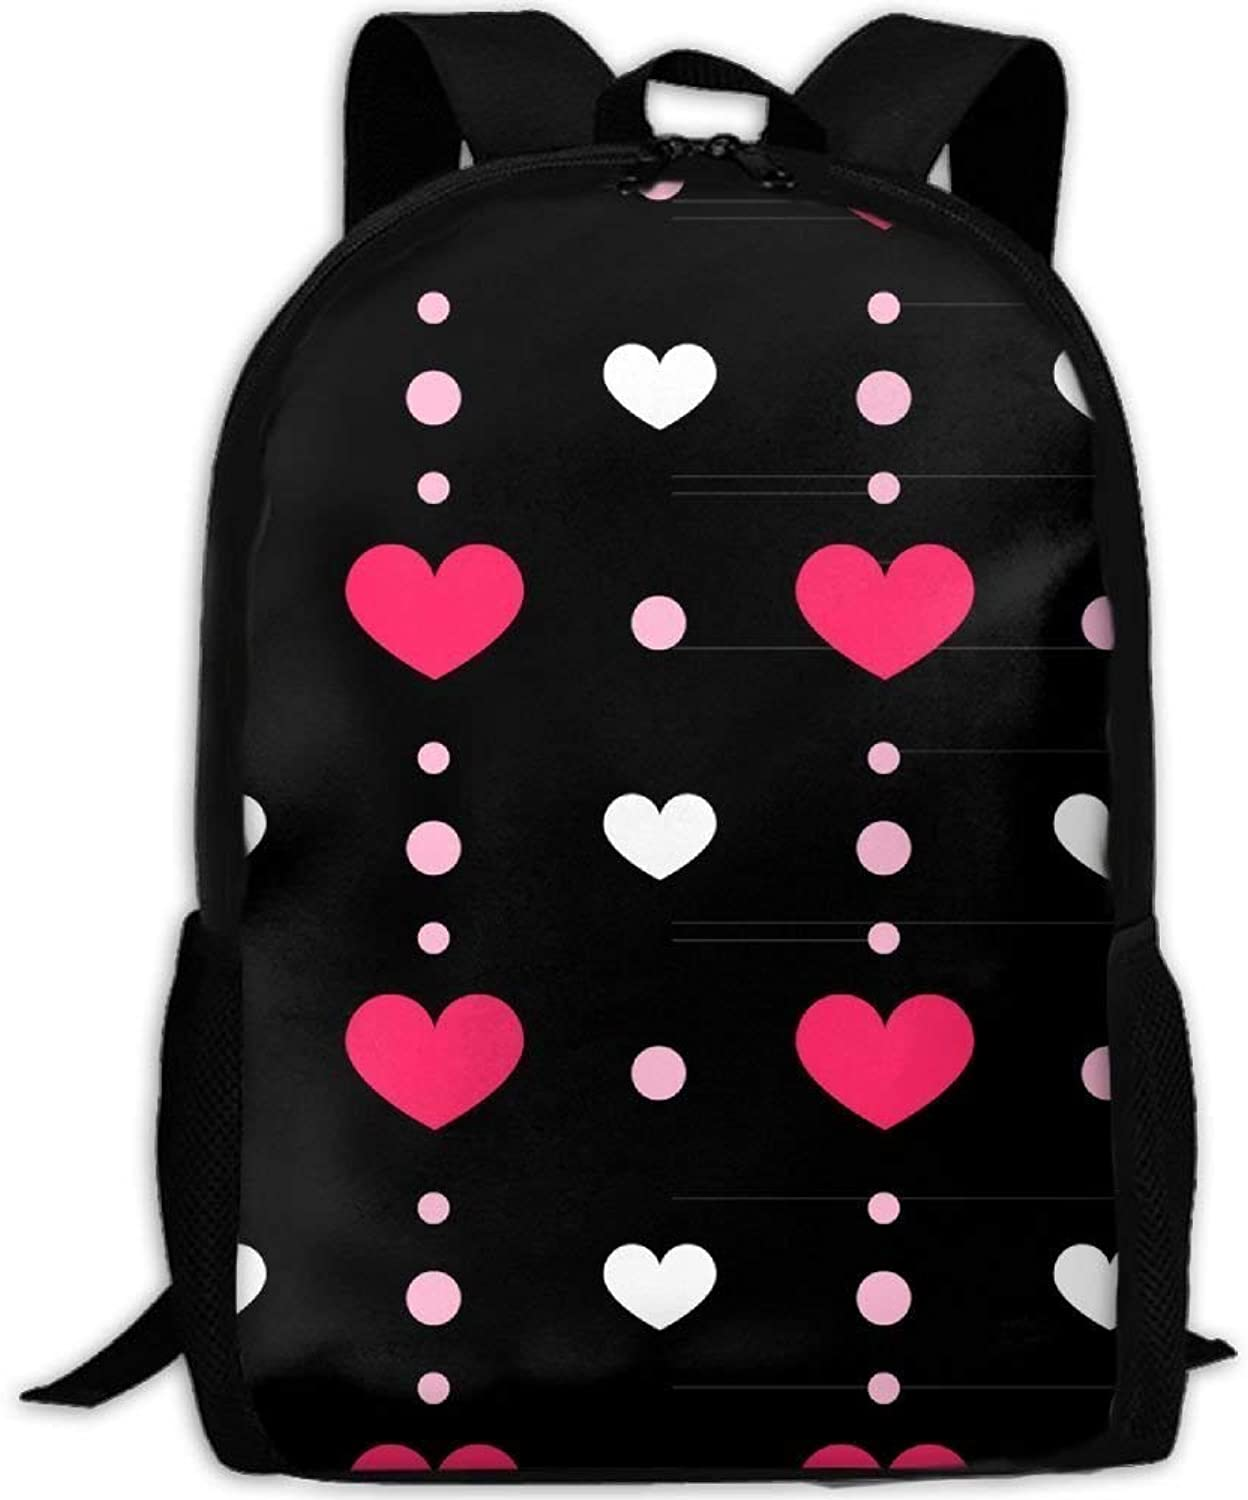 Student Backpack, School Backpack for Laptop,Most Durable Lightweight Cute Travel Water Resistant School Backpack - Creative MEI rot Love Seamless B07PZKMV36  Umweltfreundlich